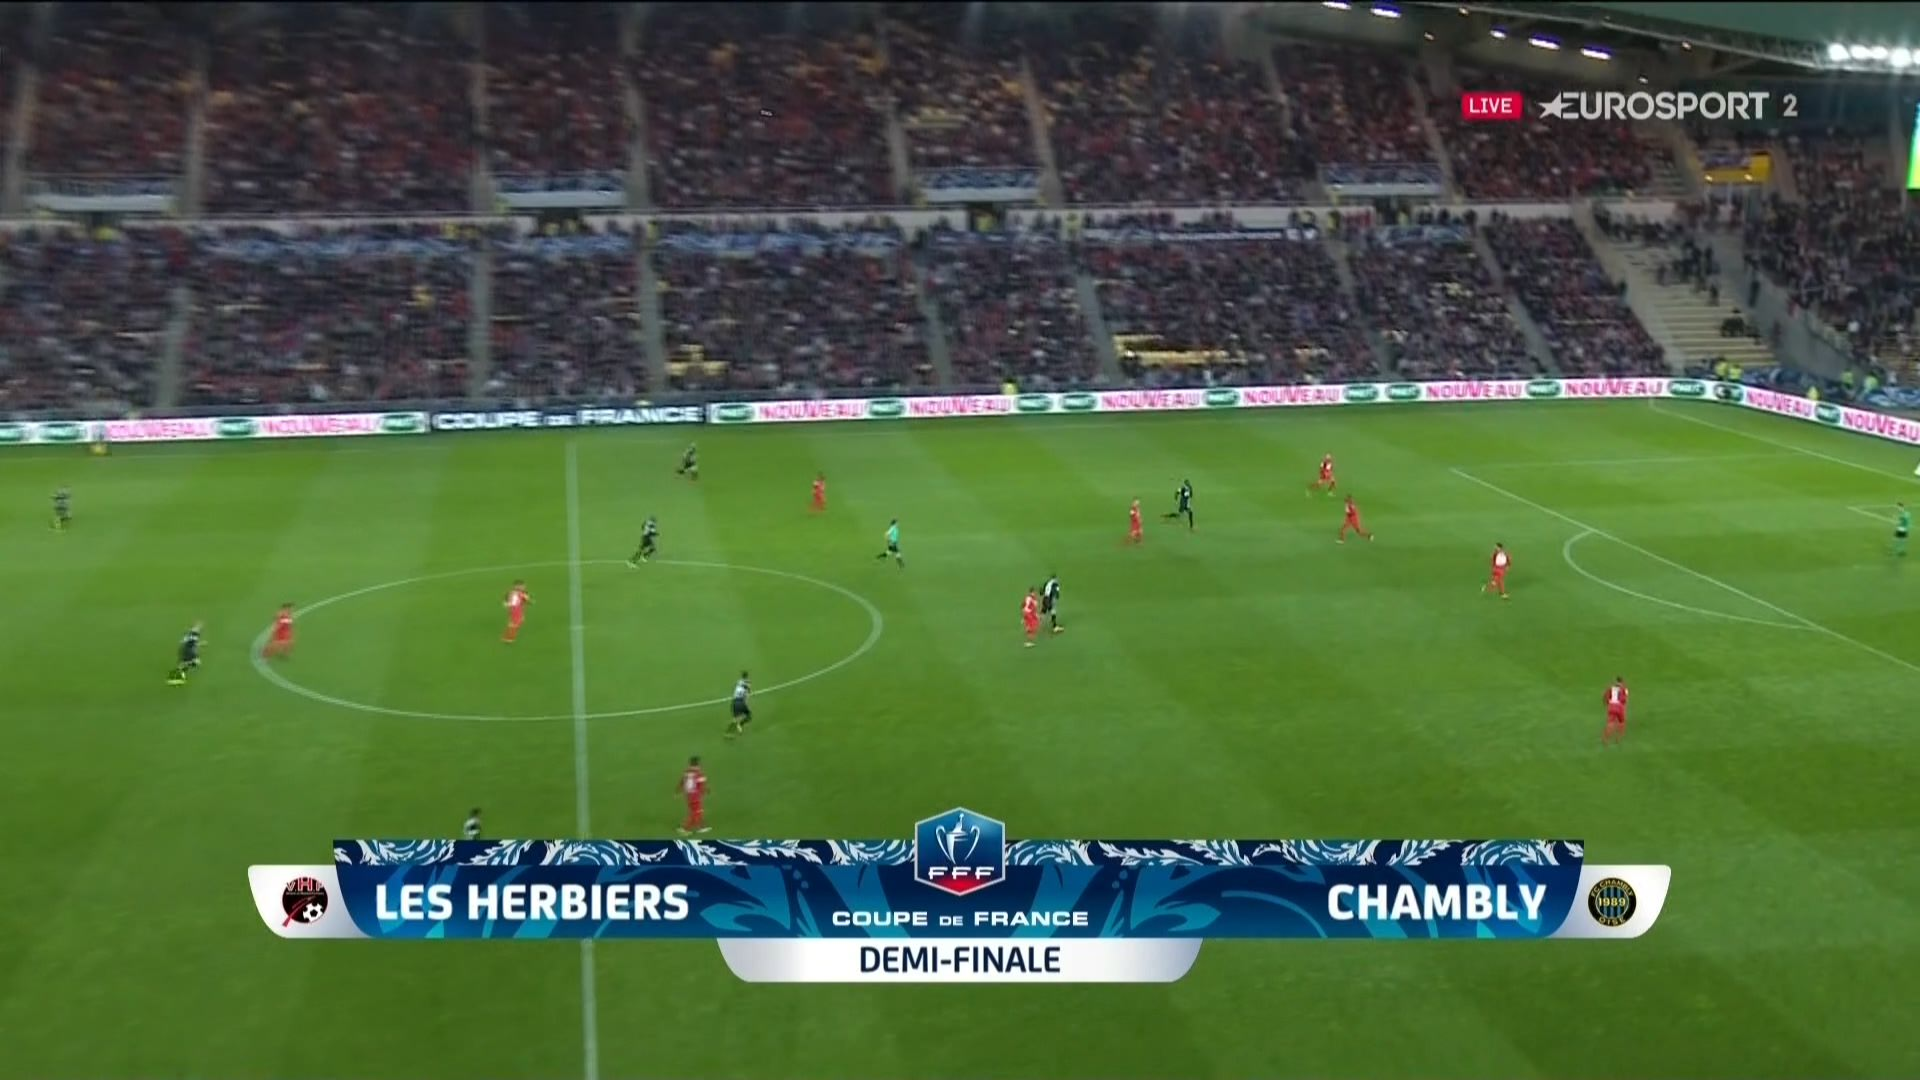 Coupe de France: el club de Herbiers en la final del campeonato